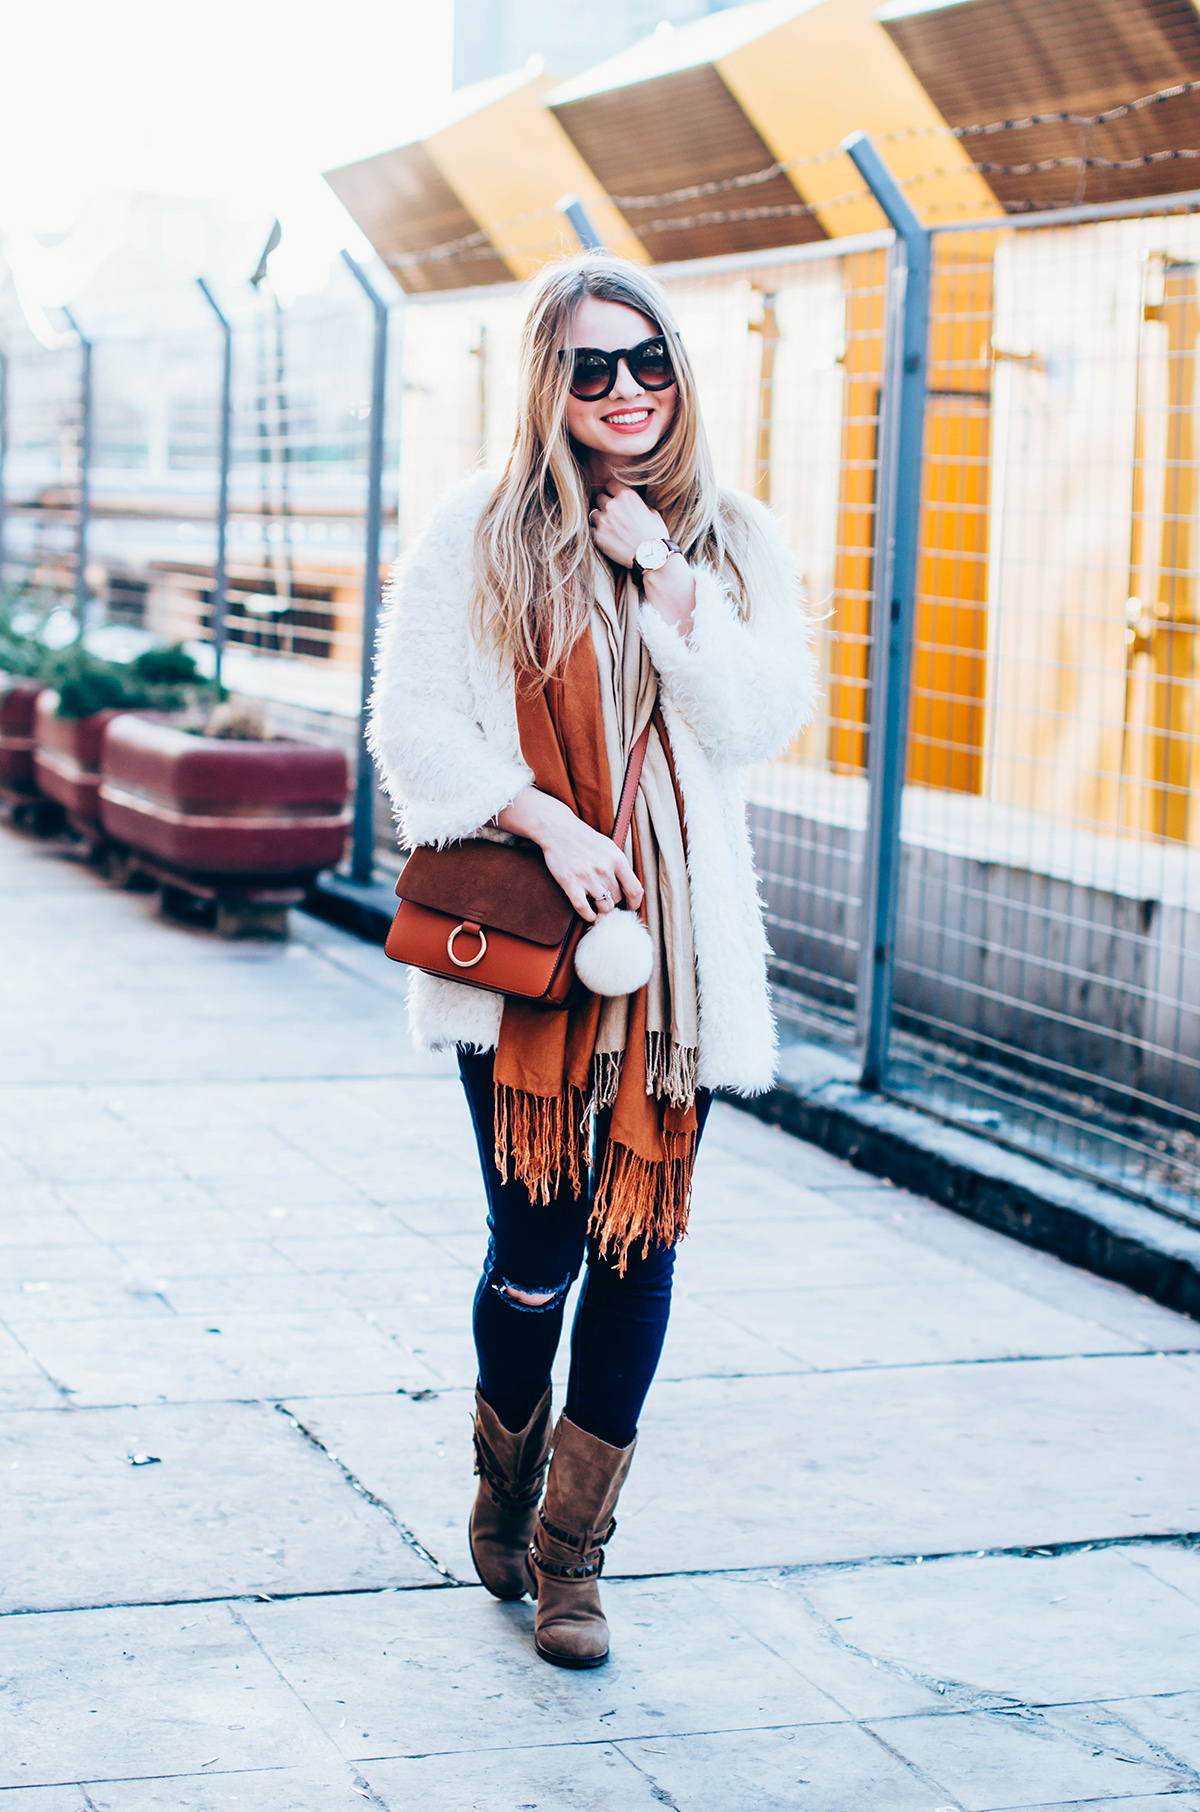 white-fluffy-cardgan-ripped-skinny-jeans-suede-boots-camel-scarf-fluffy-keyrng-cat-eye-sunglasses (7)